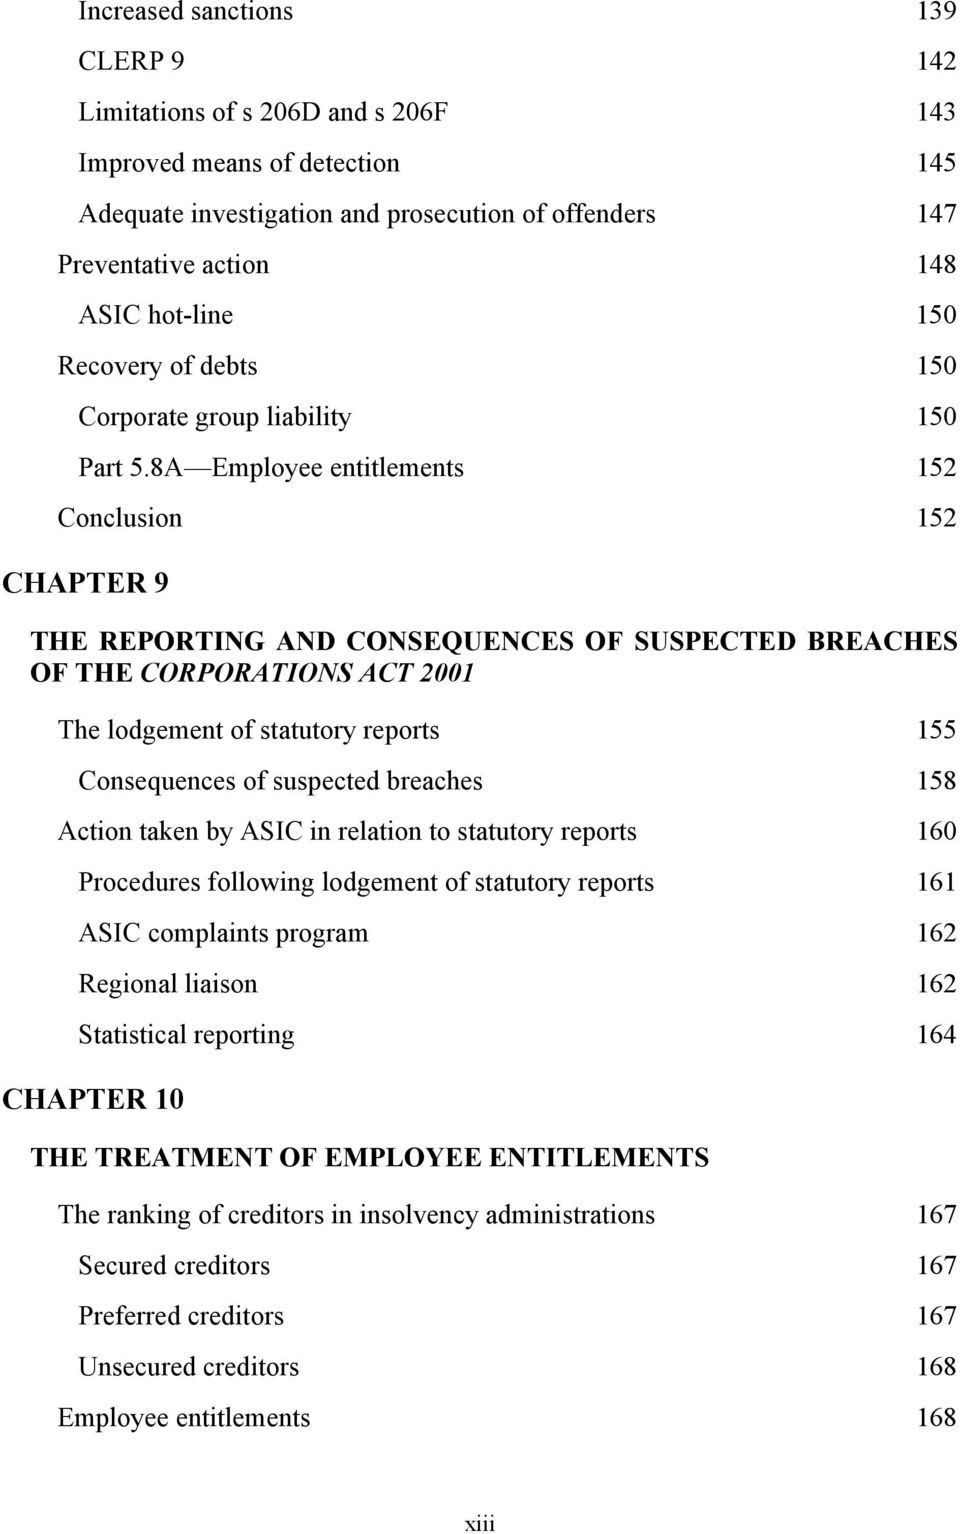 8A Employee entitlements 152 Conclusion 152 CHAPTER 9 THE REPORTING AND CONSEQUENCES OF SUSPECTED BREACHES OF THE CORPORATIONS ACT 2001 The lodgement of statutory reports 155 Consequences of